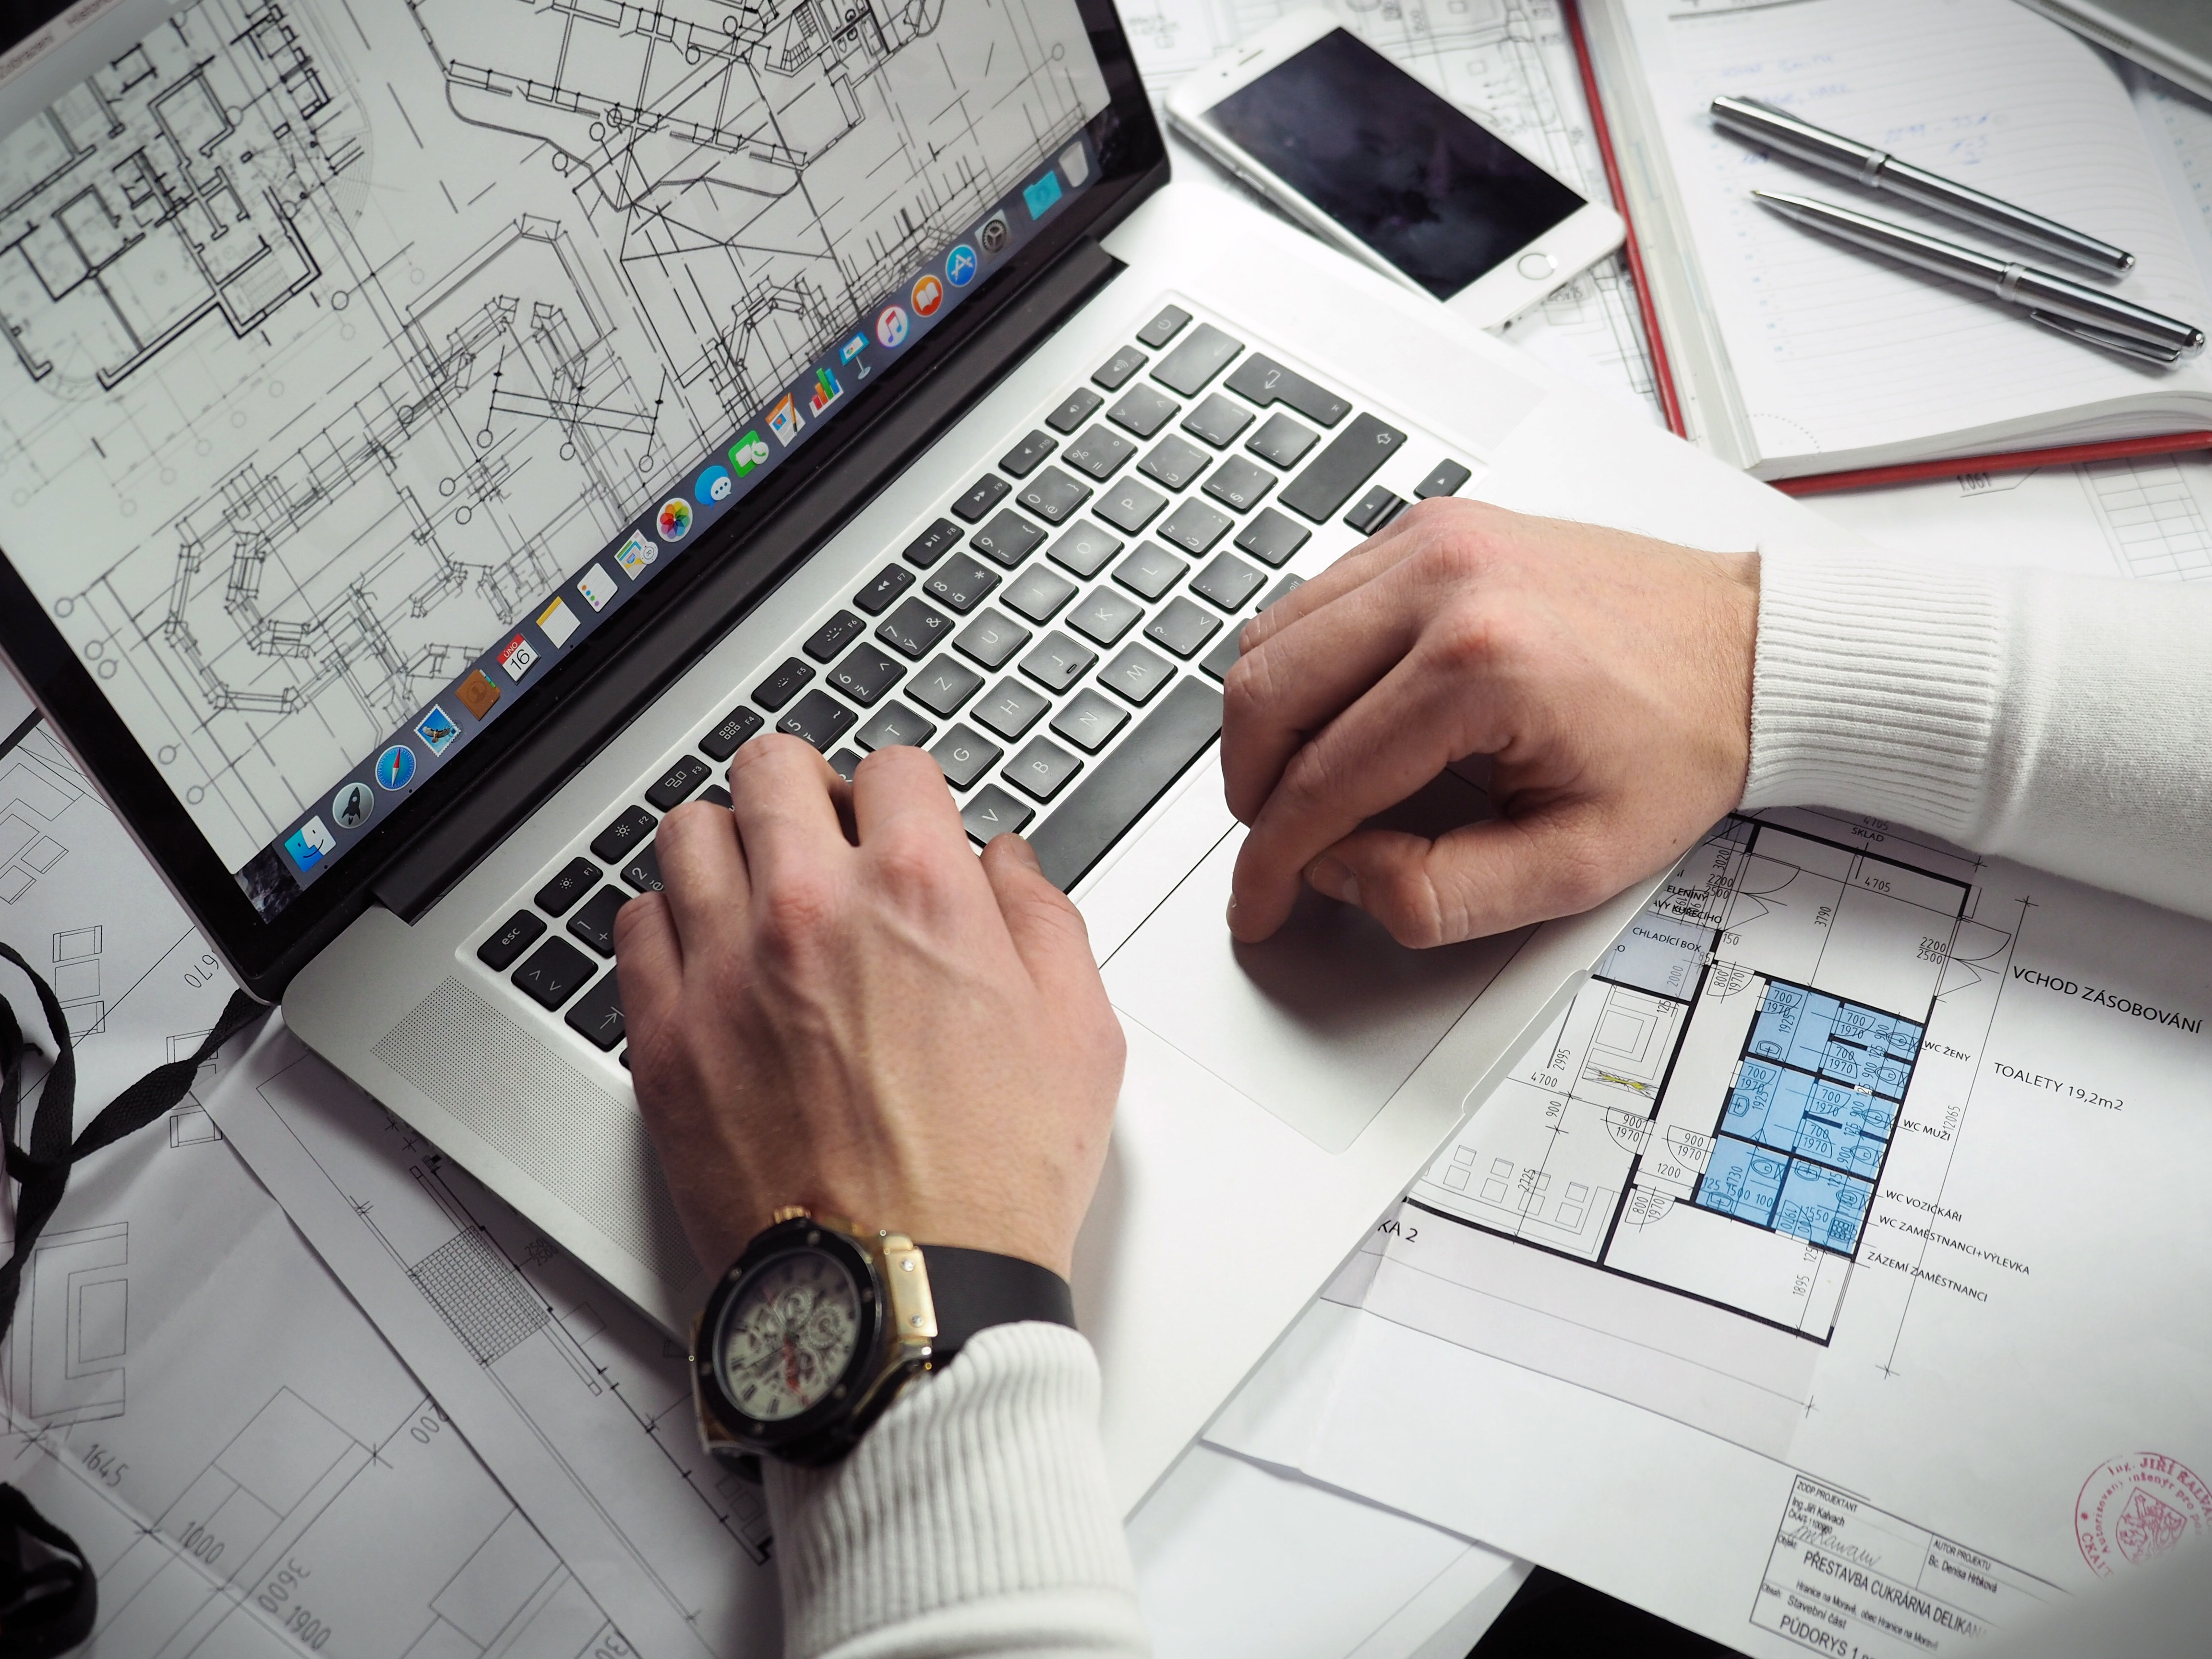 Adapting Architectural Design Processes for Remote Work